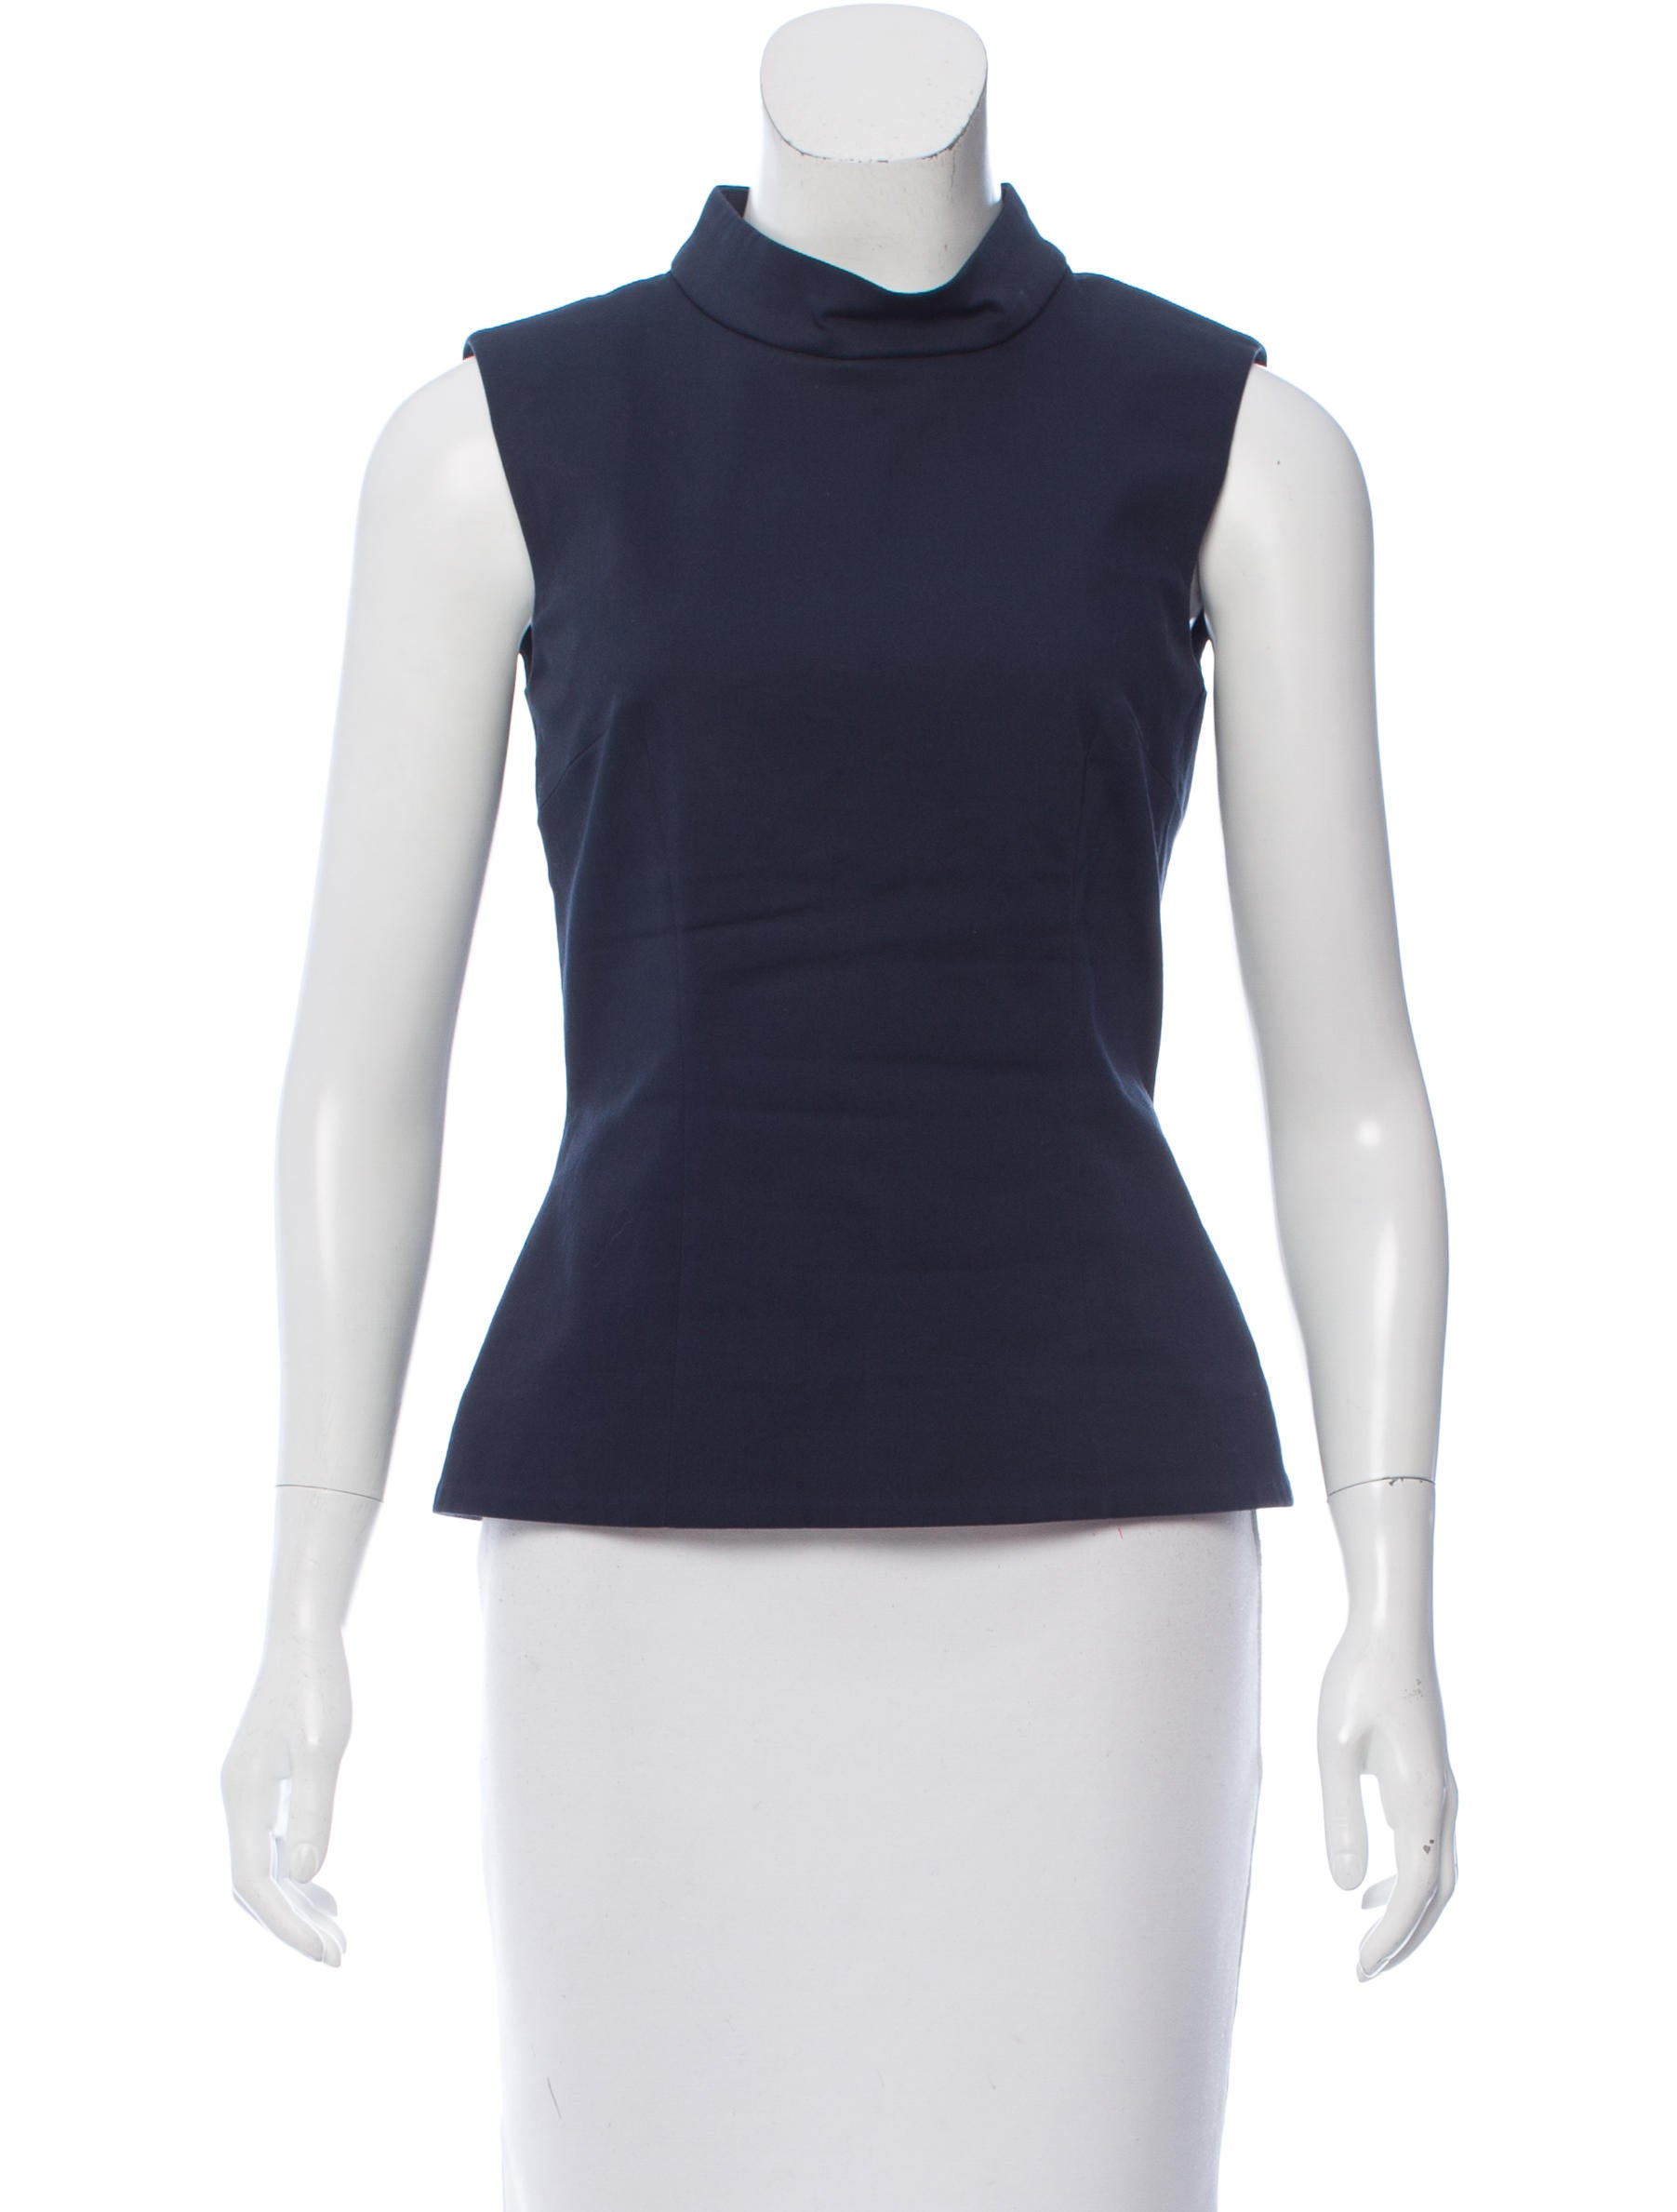 Victoria beckham sleeveless mock neck top clothing for Sleeveless mock turtleneck shirts